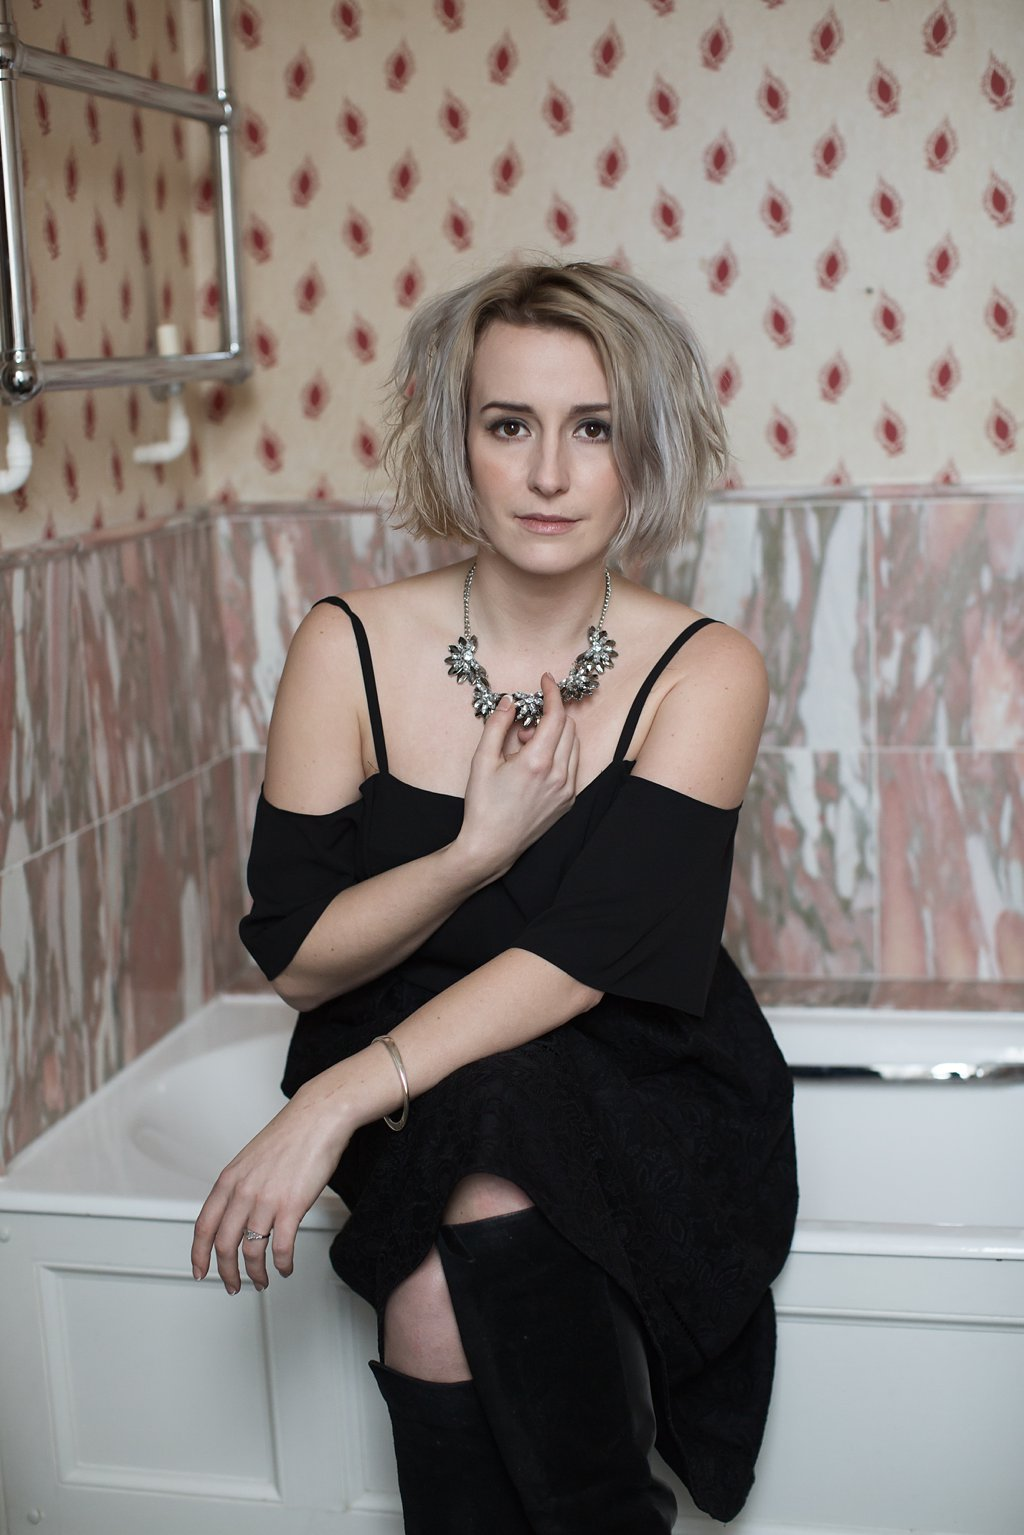 Fashion-style Portrait of Rogan on Bath Tub_0006.jpg